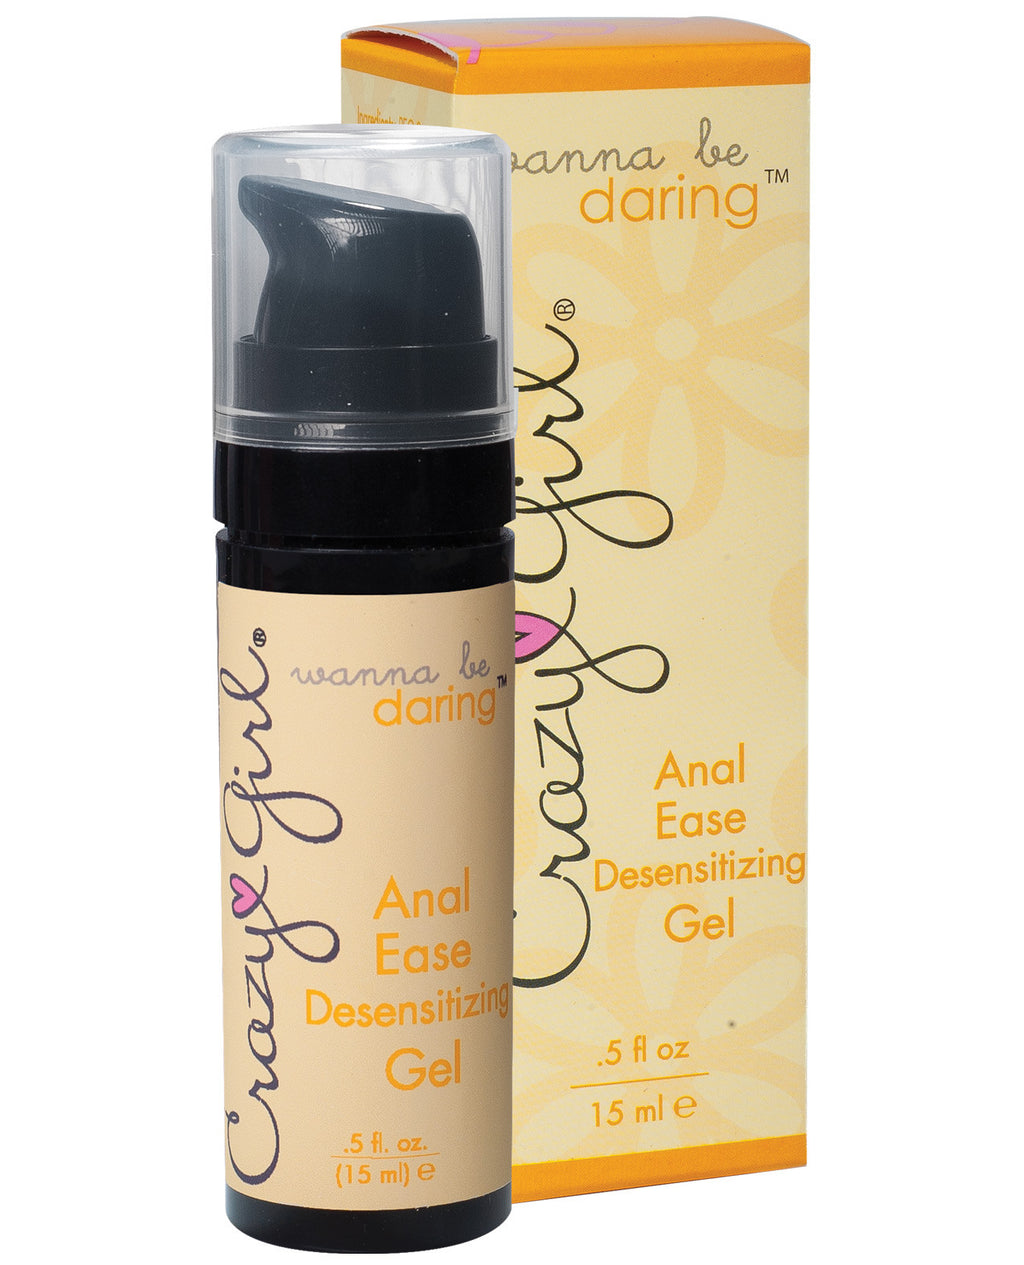 Crazy Girl Wanna Be Daring Desensitizing Anal Ease Gel - .5 oz, Anal Products - The Fallen Angel